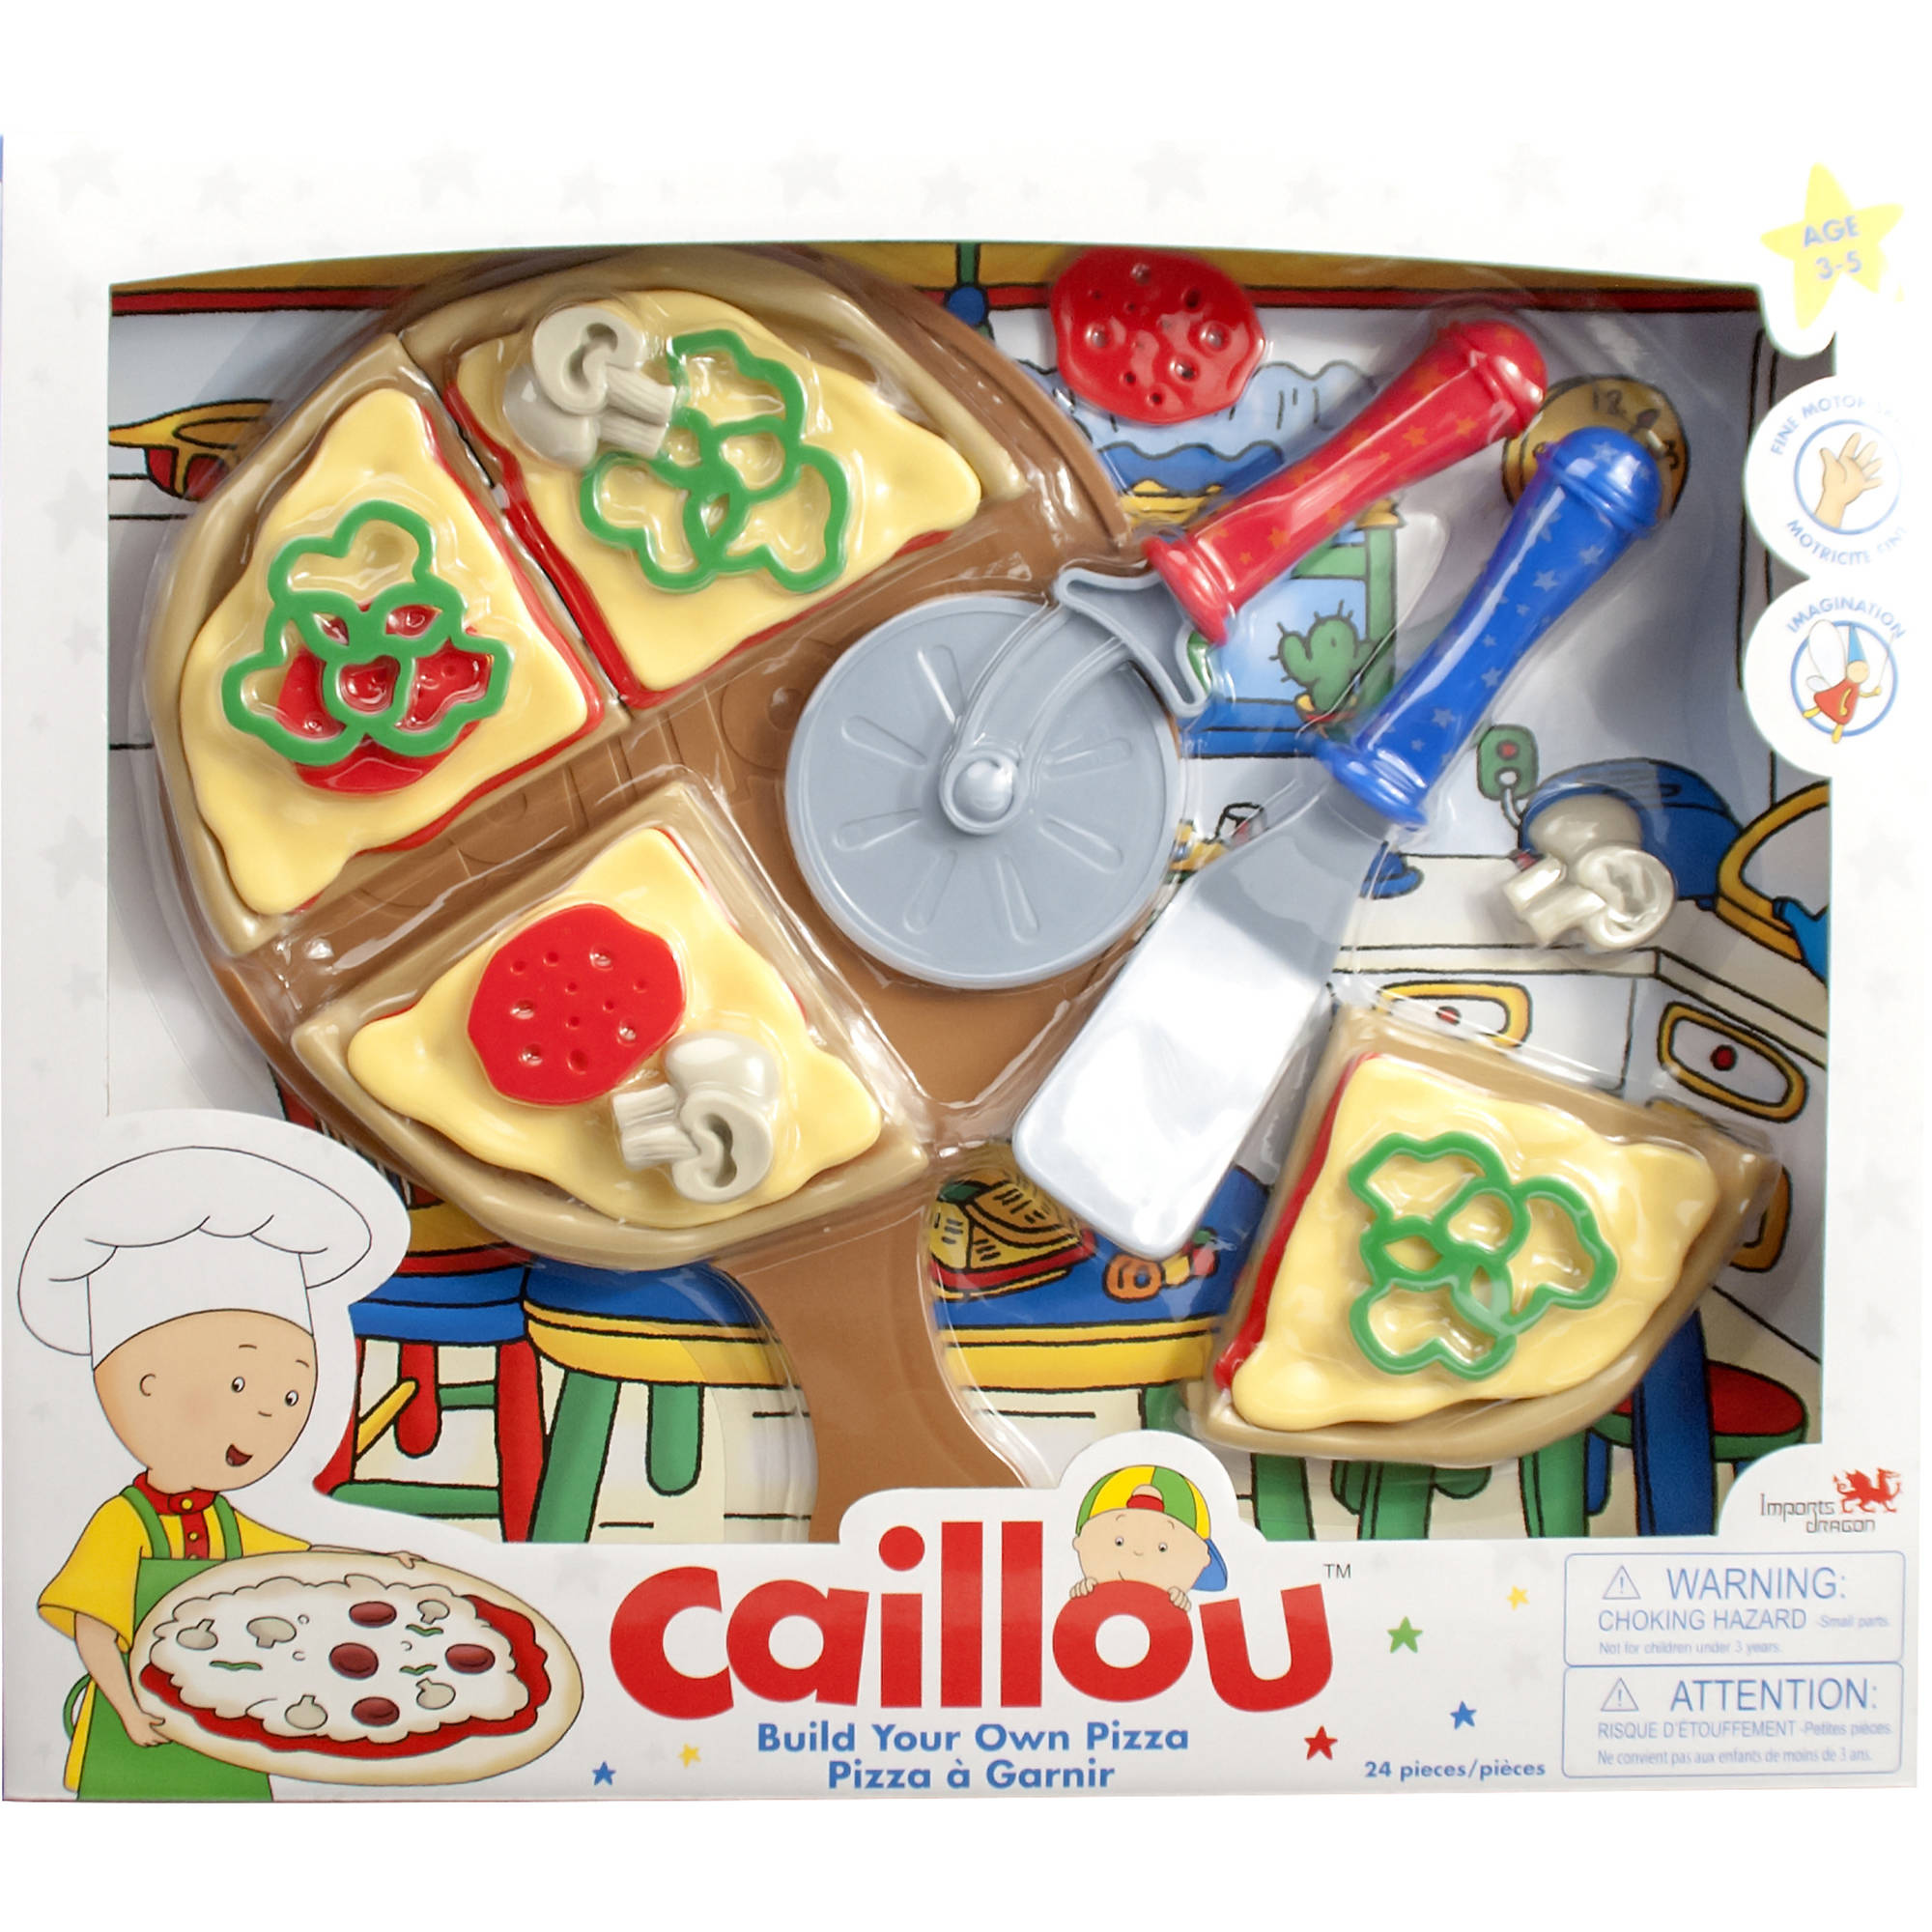 Caillou Build Your Own Pizza Set